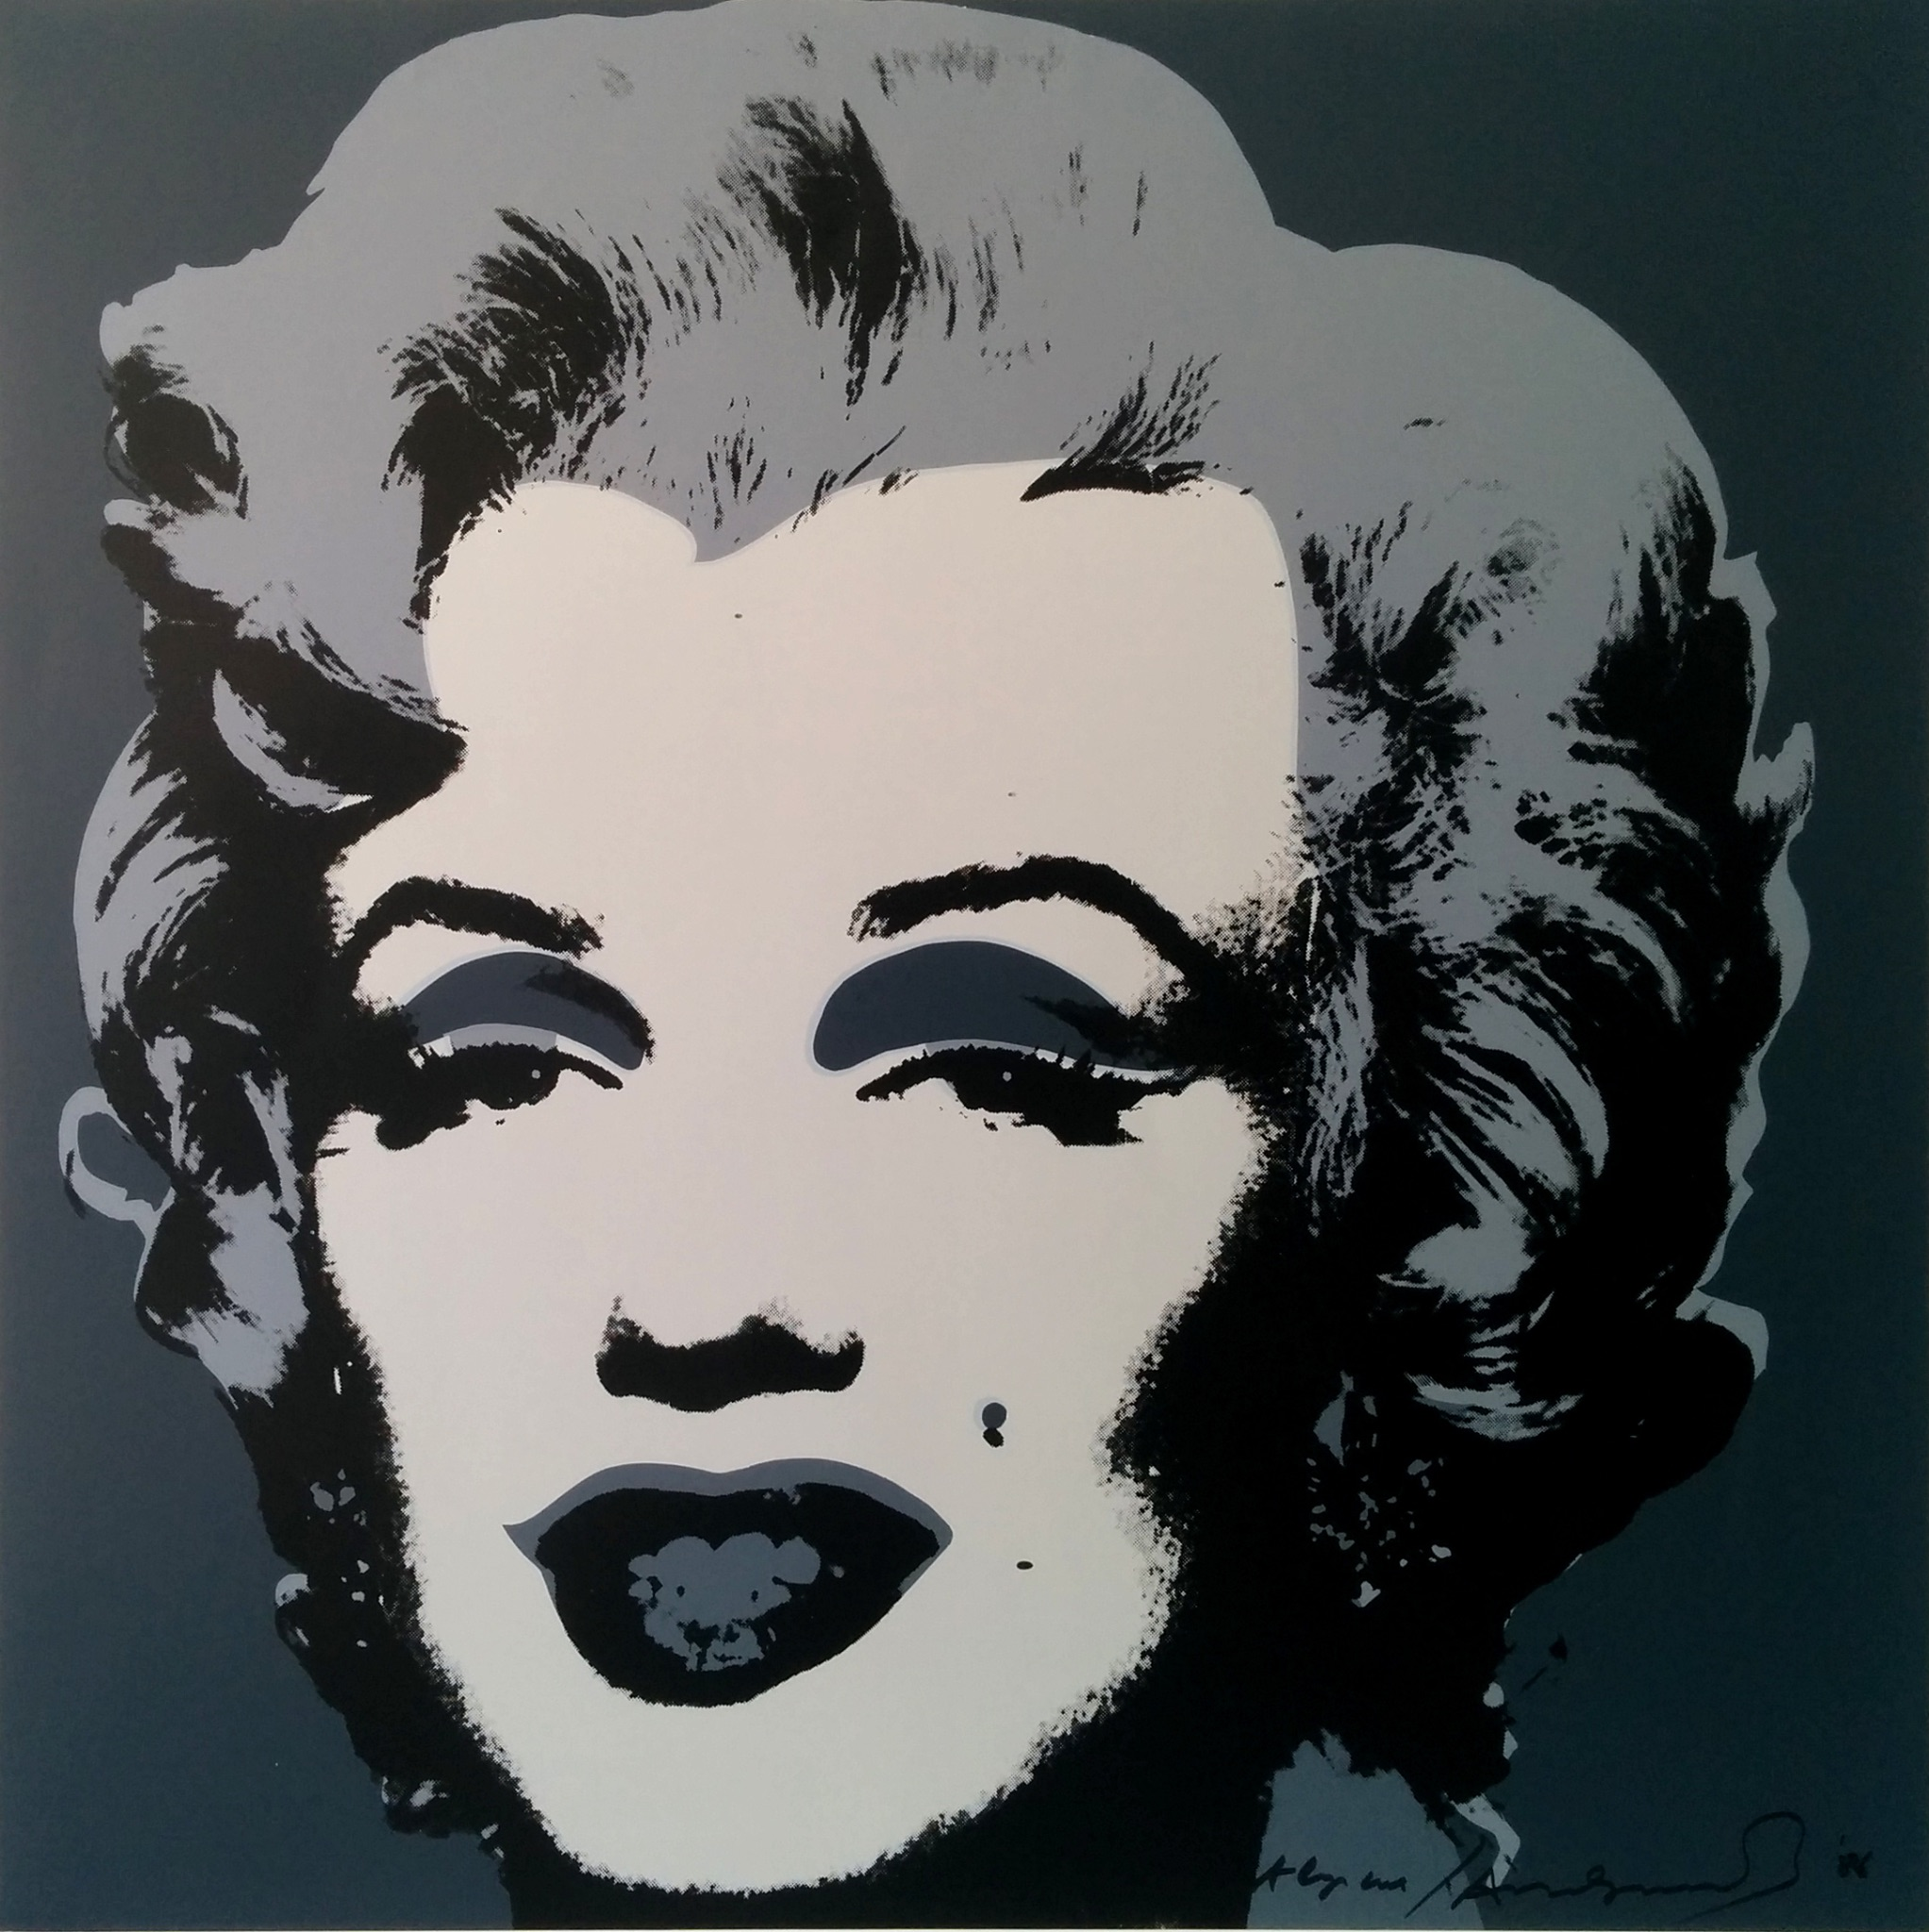 Marilyn, this is not by me (Andy Warhol, 1970)